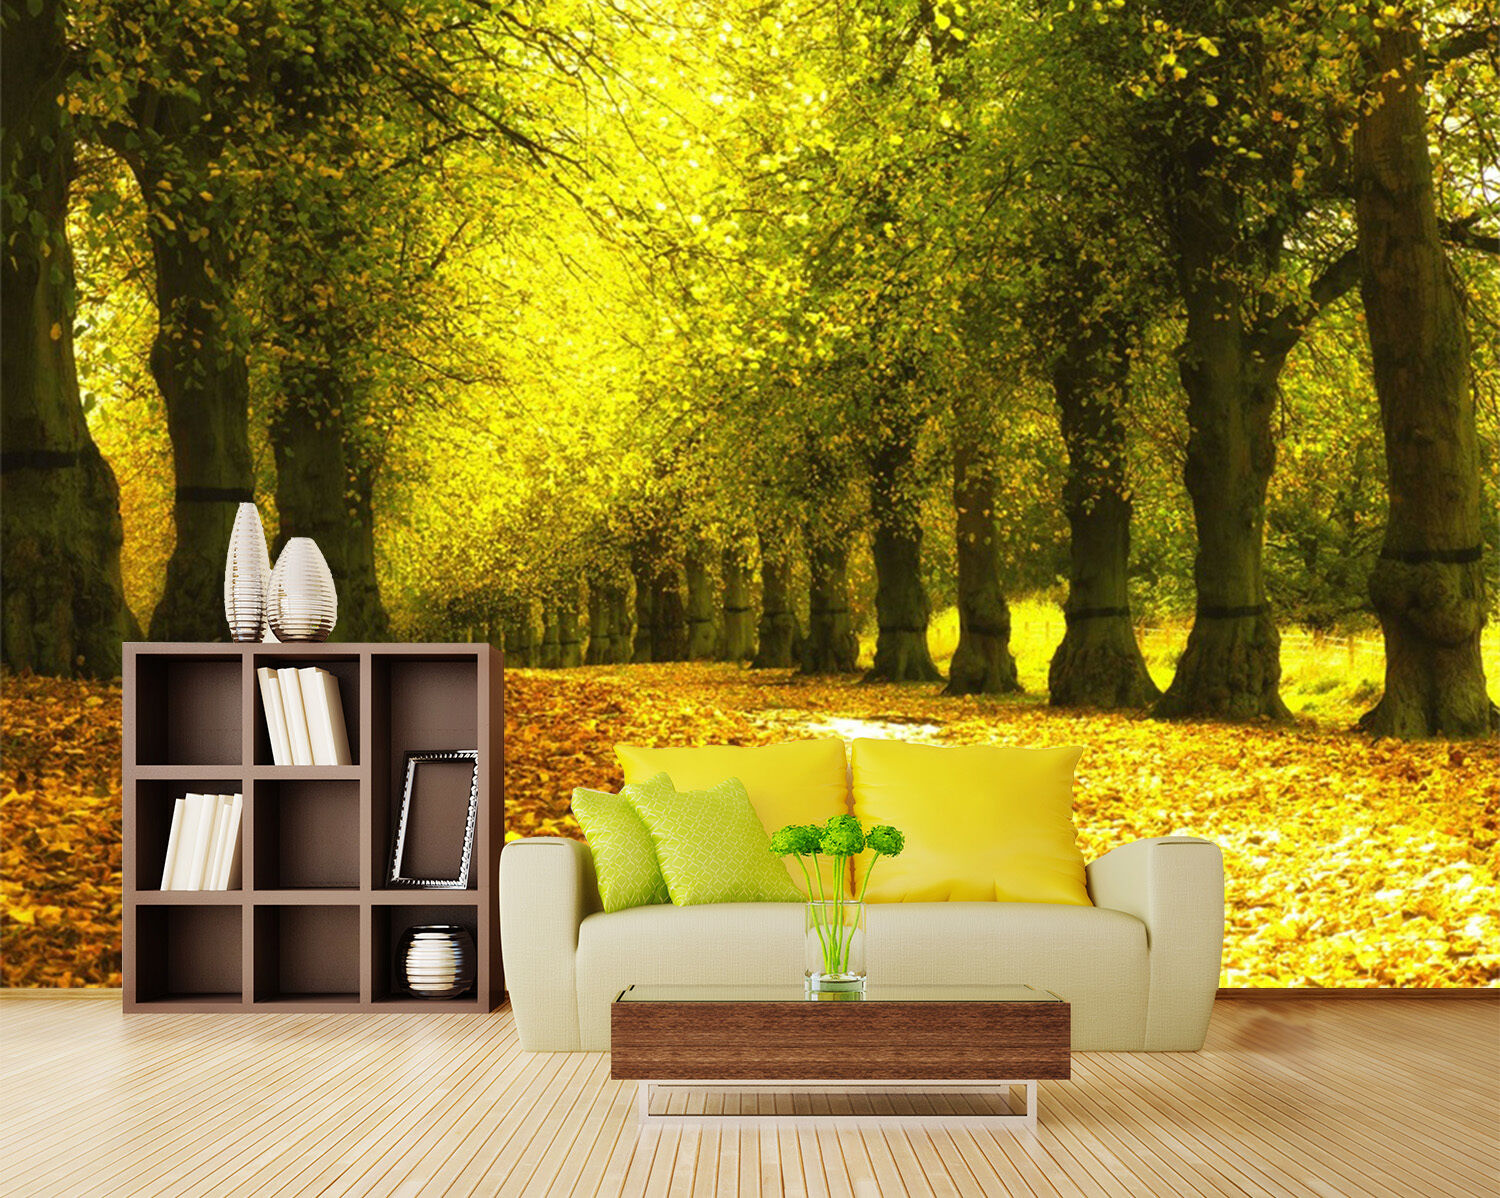 3D Deciduous leaves forest 56 wall Paper Print Decal Wall Deco Indoor wall Mural